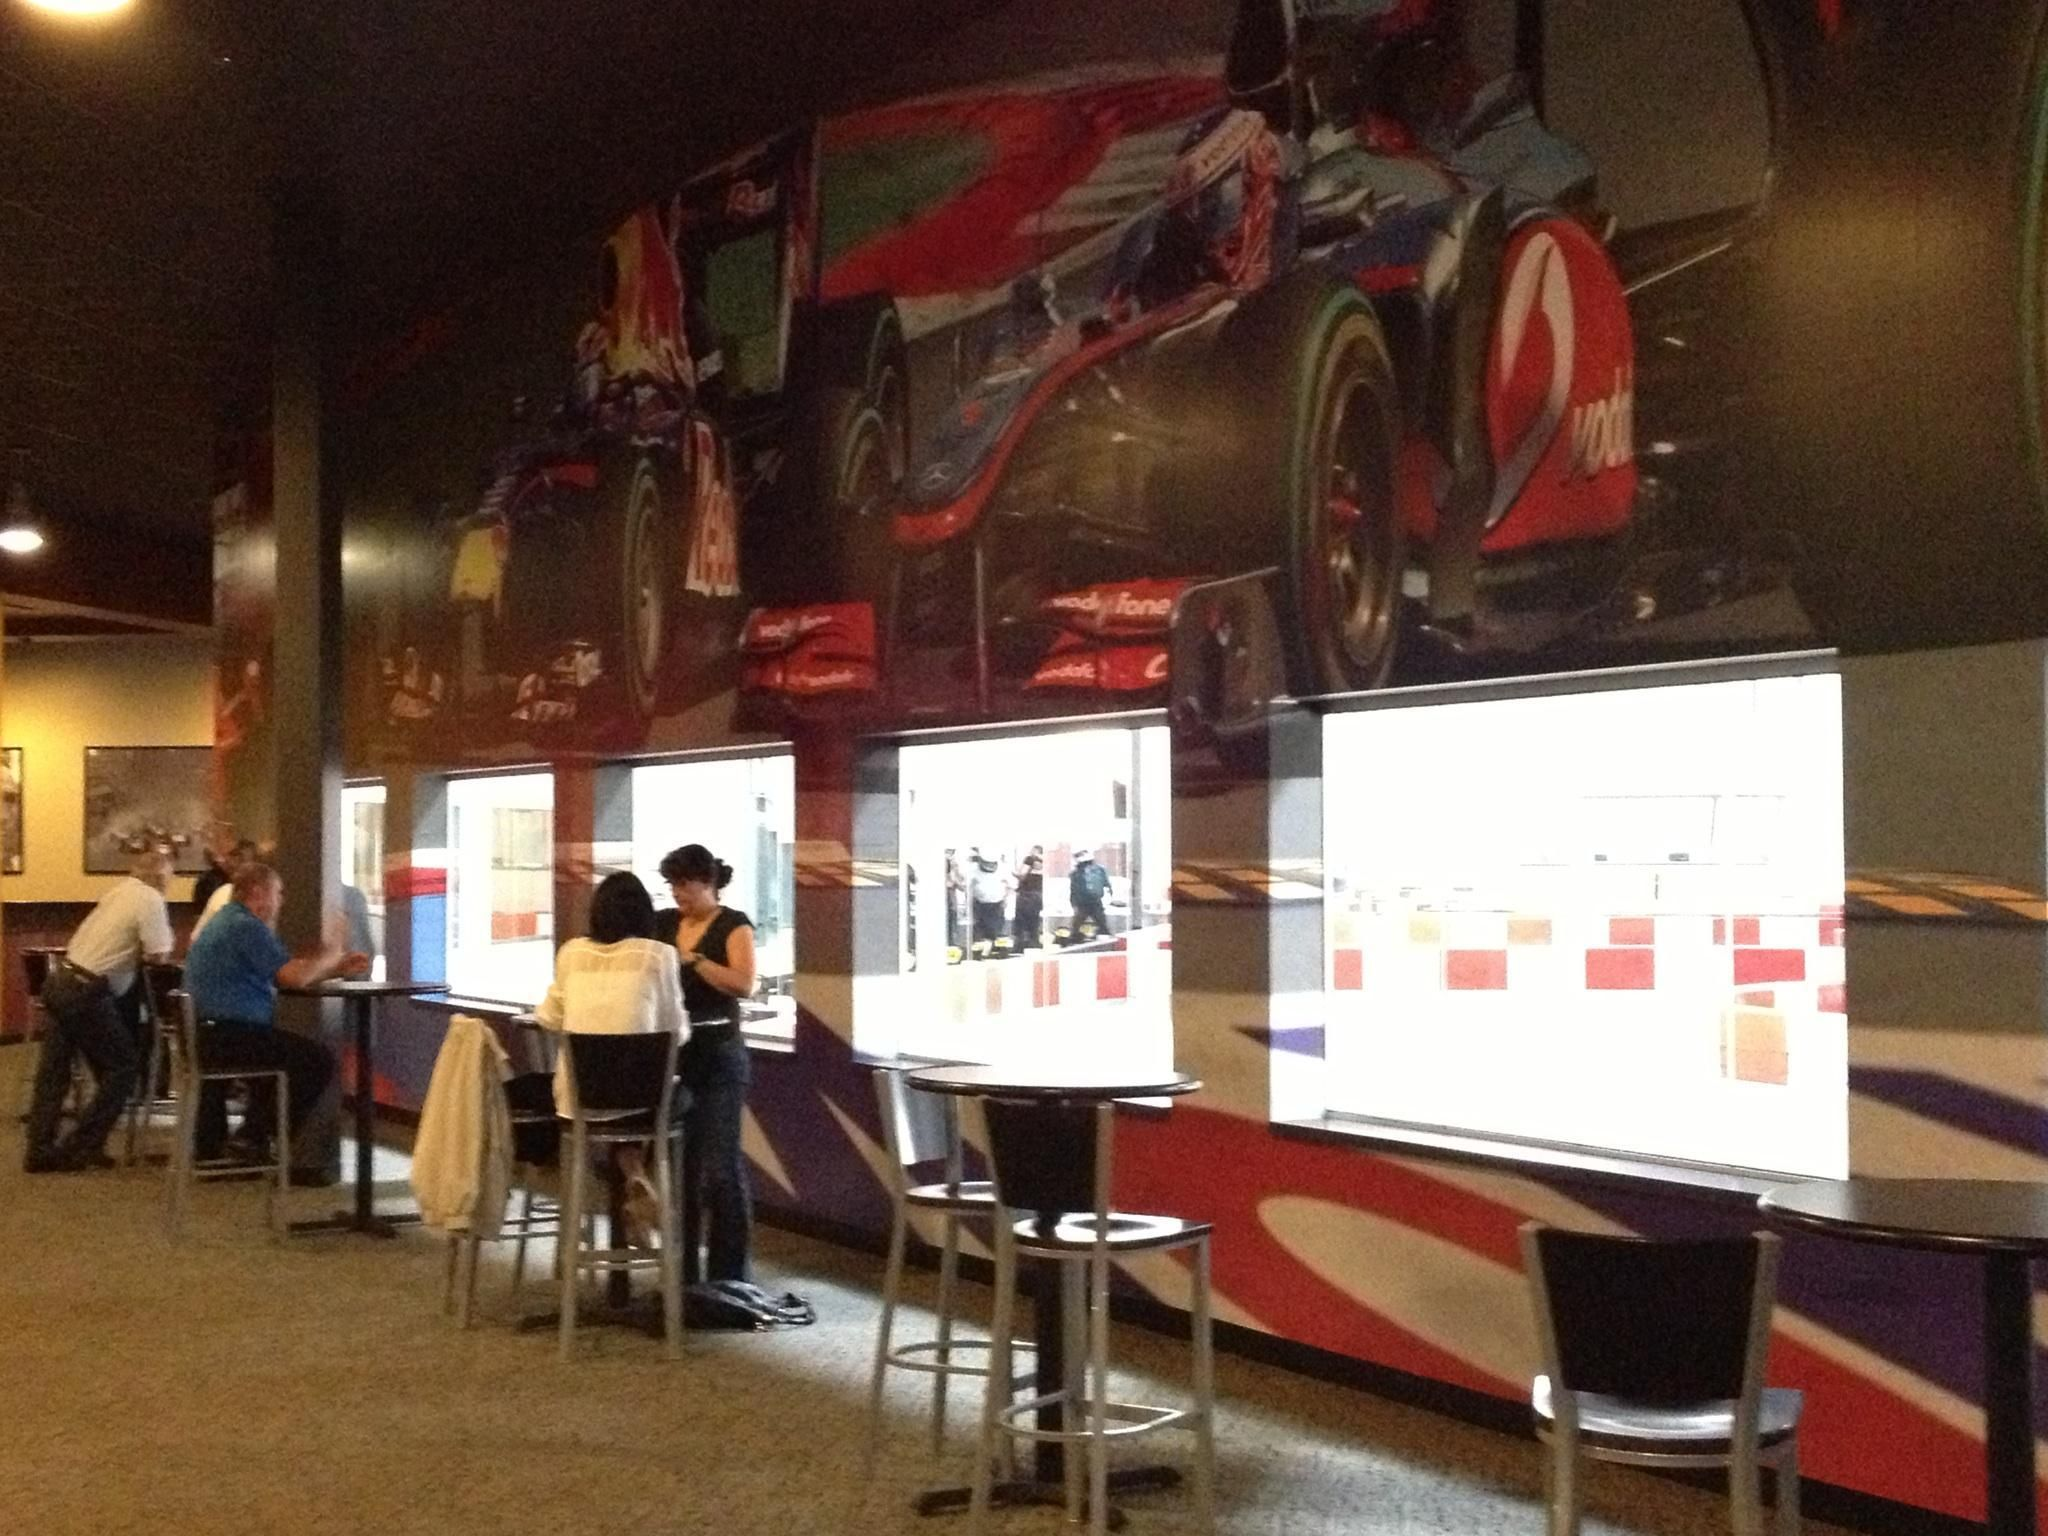 K1 Speed Addison! Opened June, 2013 at 2381 W Army Trail